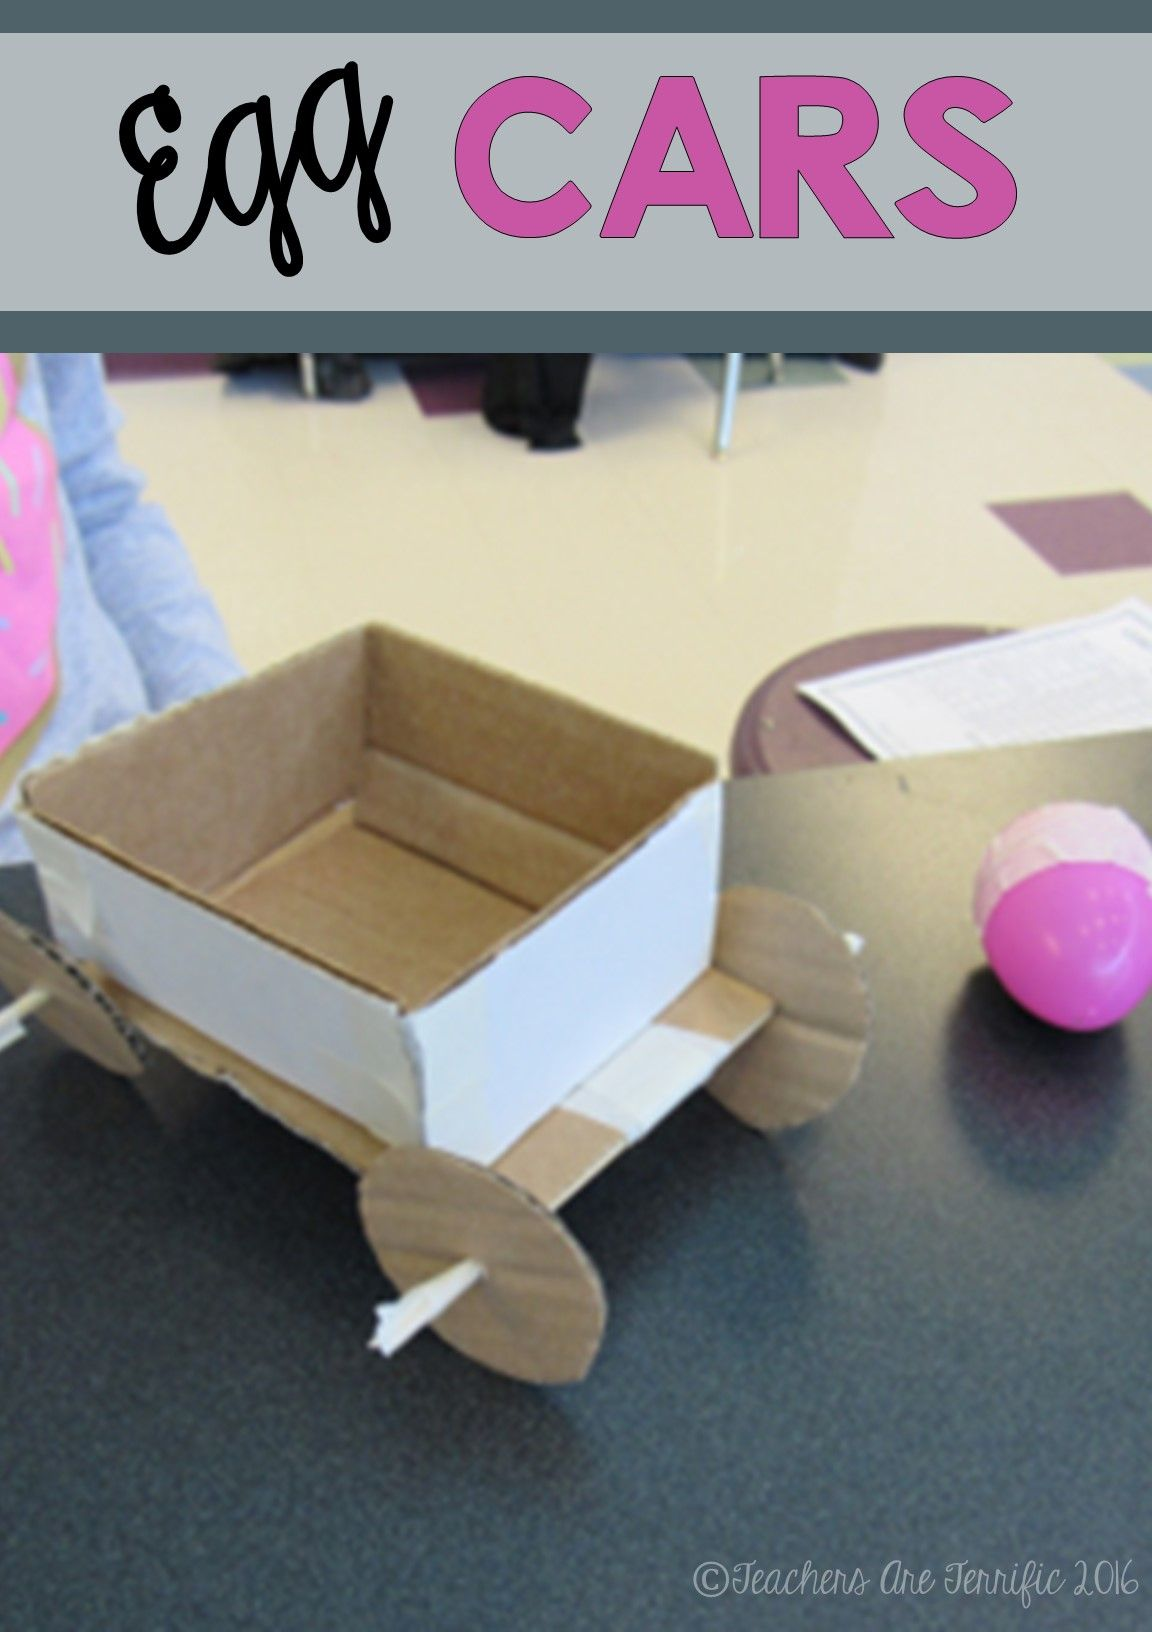 Stem Challenge Egg Cars Featuring Newton S 2nd Law